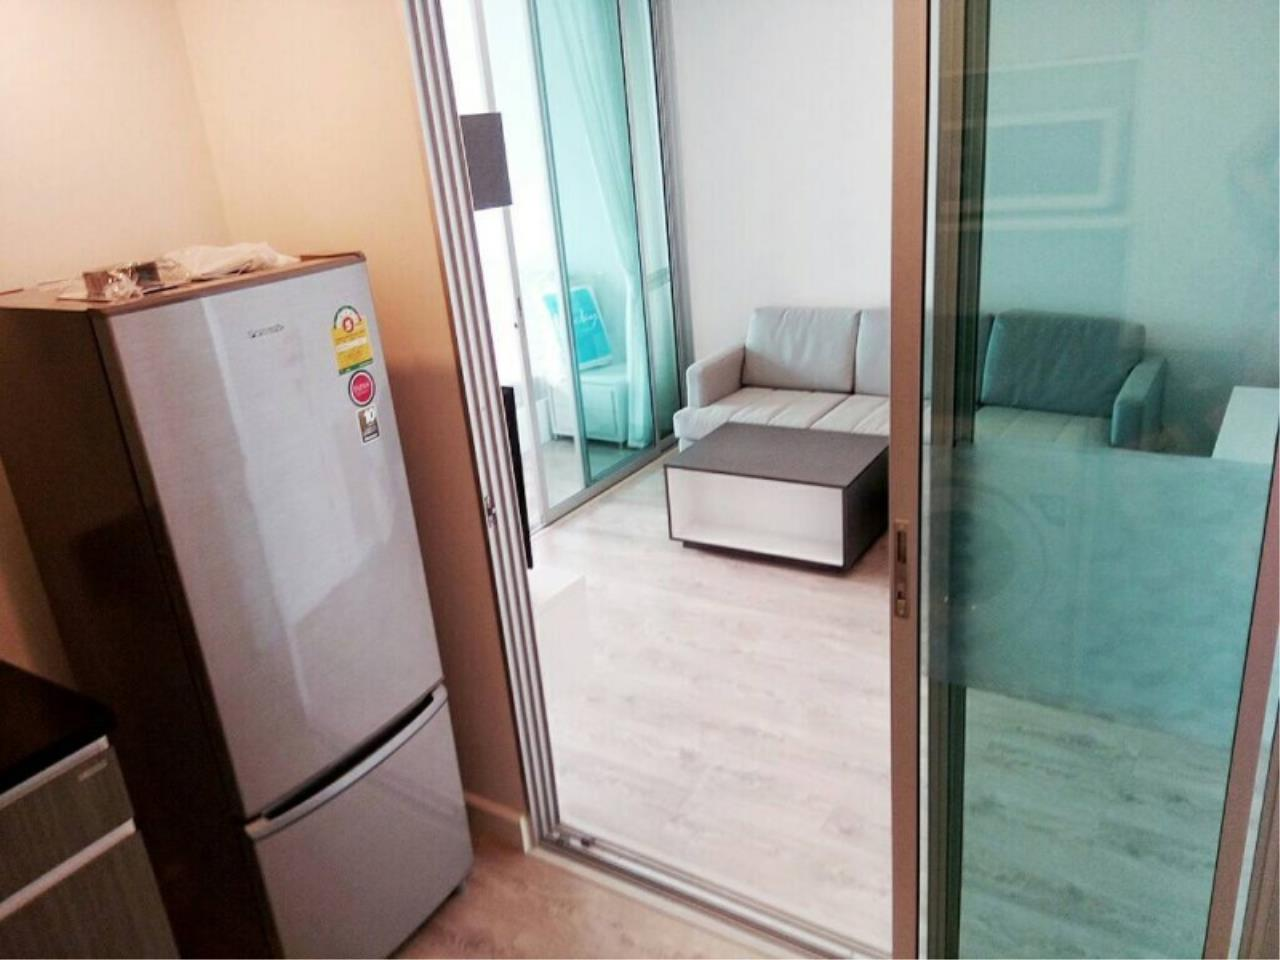 Century21 Skylux Agency's Bridge Sathorn-Narathiwas / Condo For Sale / 1 Bedroom / 33.6 SQM / BTS Chong Nonsi / Bangkok 6